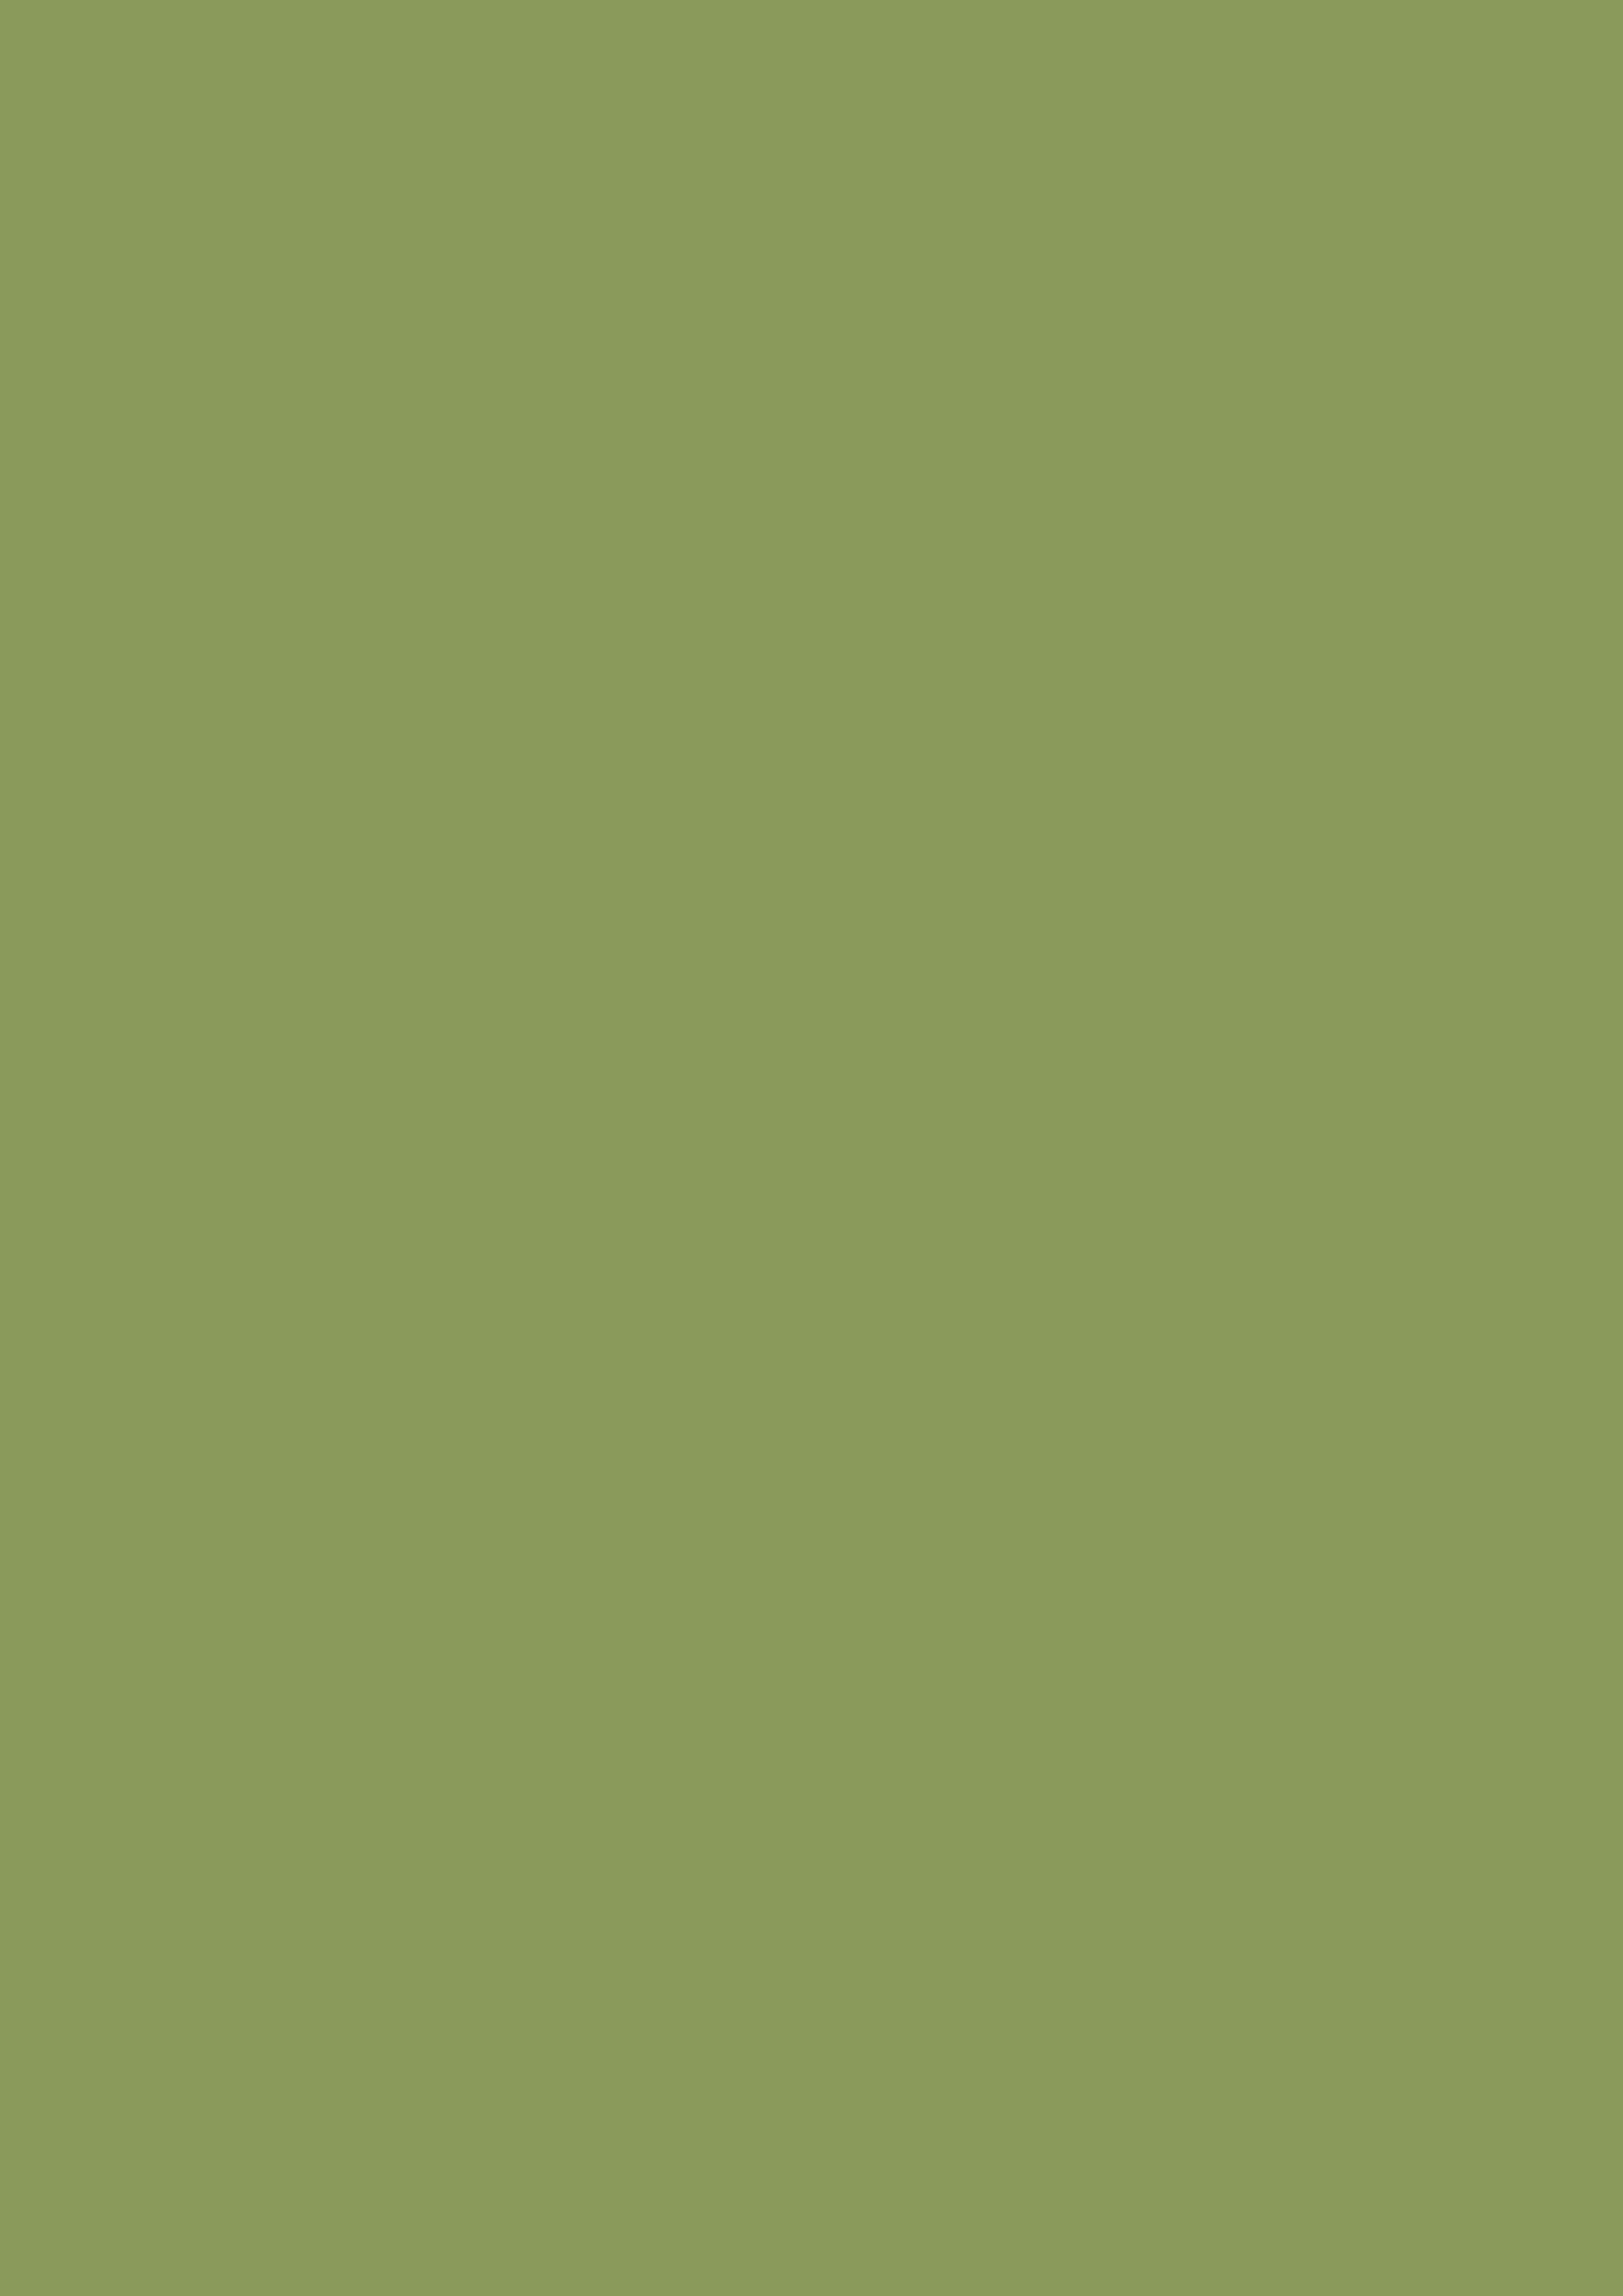 2480x3508 Moss Green Solid Color Background